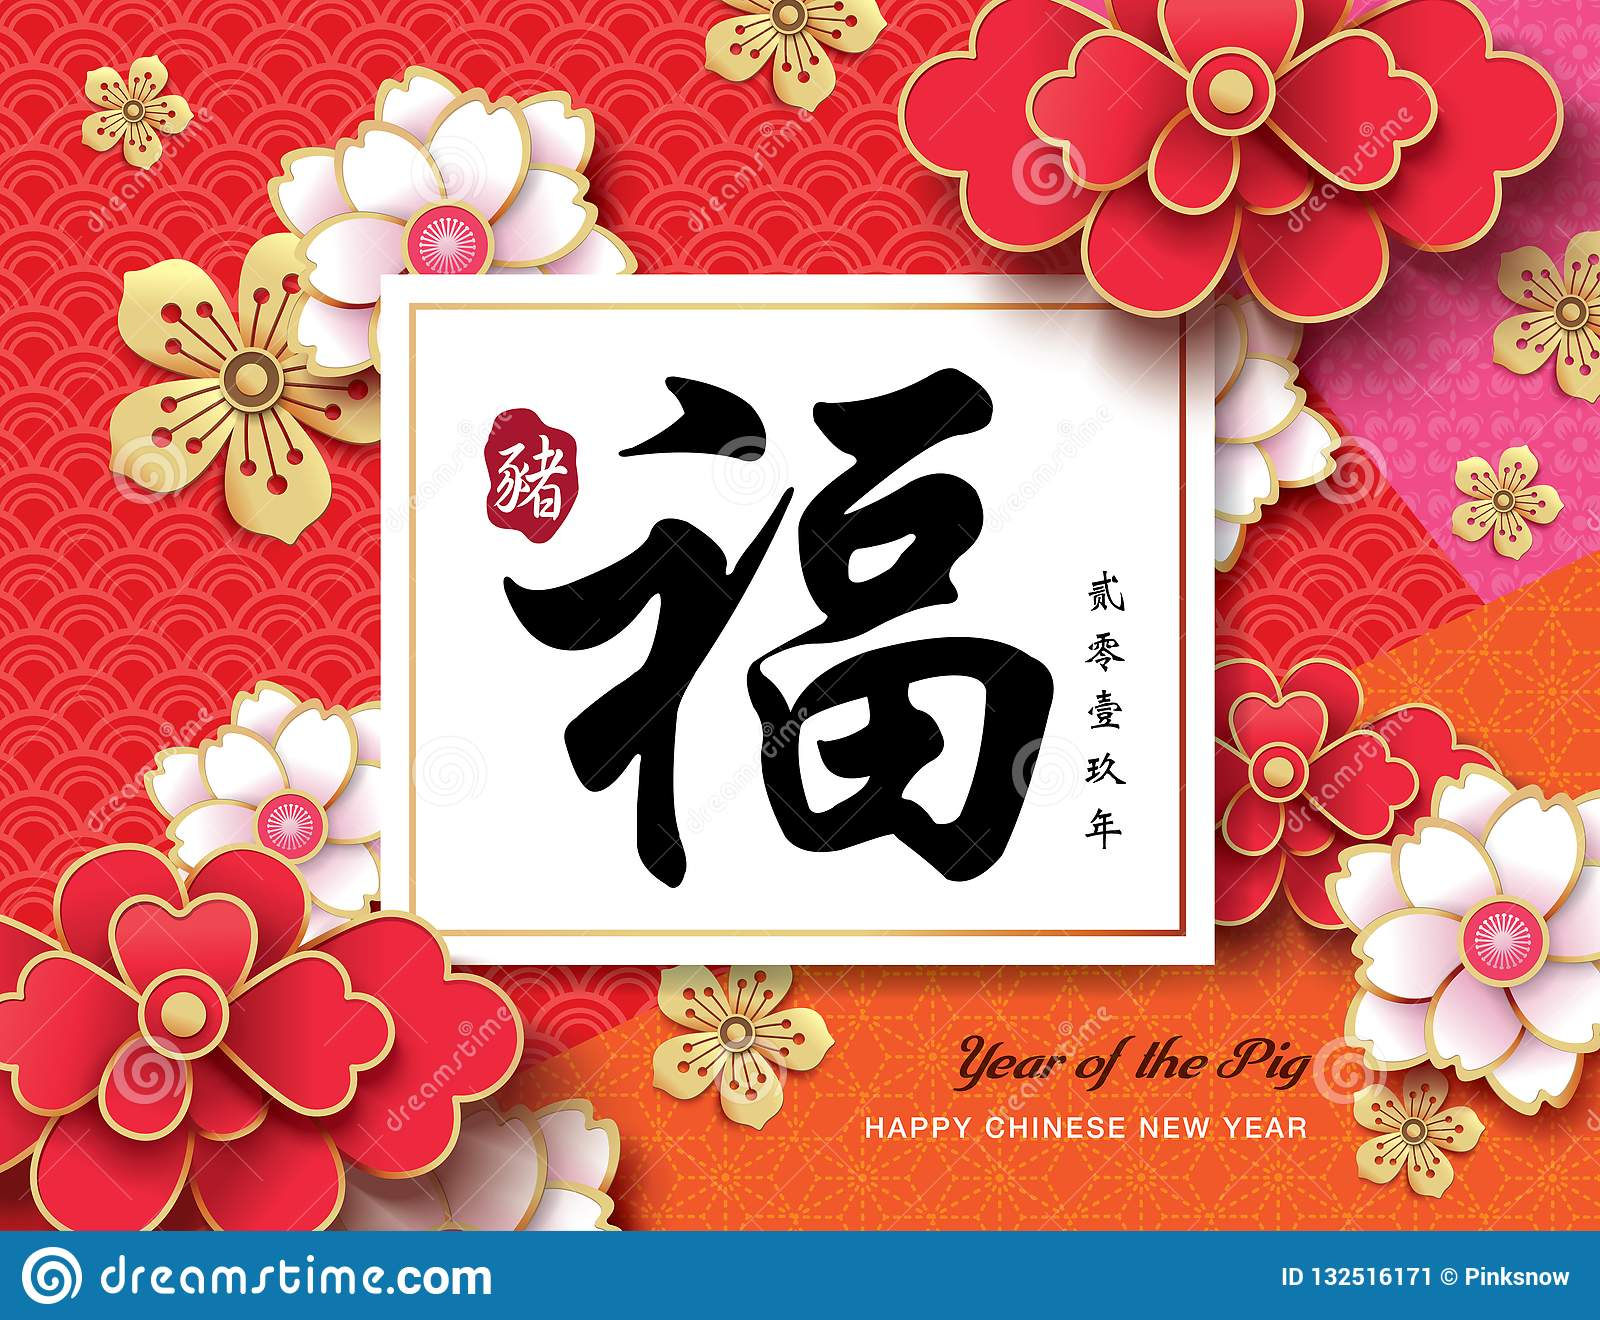 Happy Chinese New Year 2019 Stock Vector - Illustration of ...